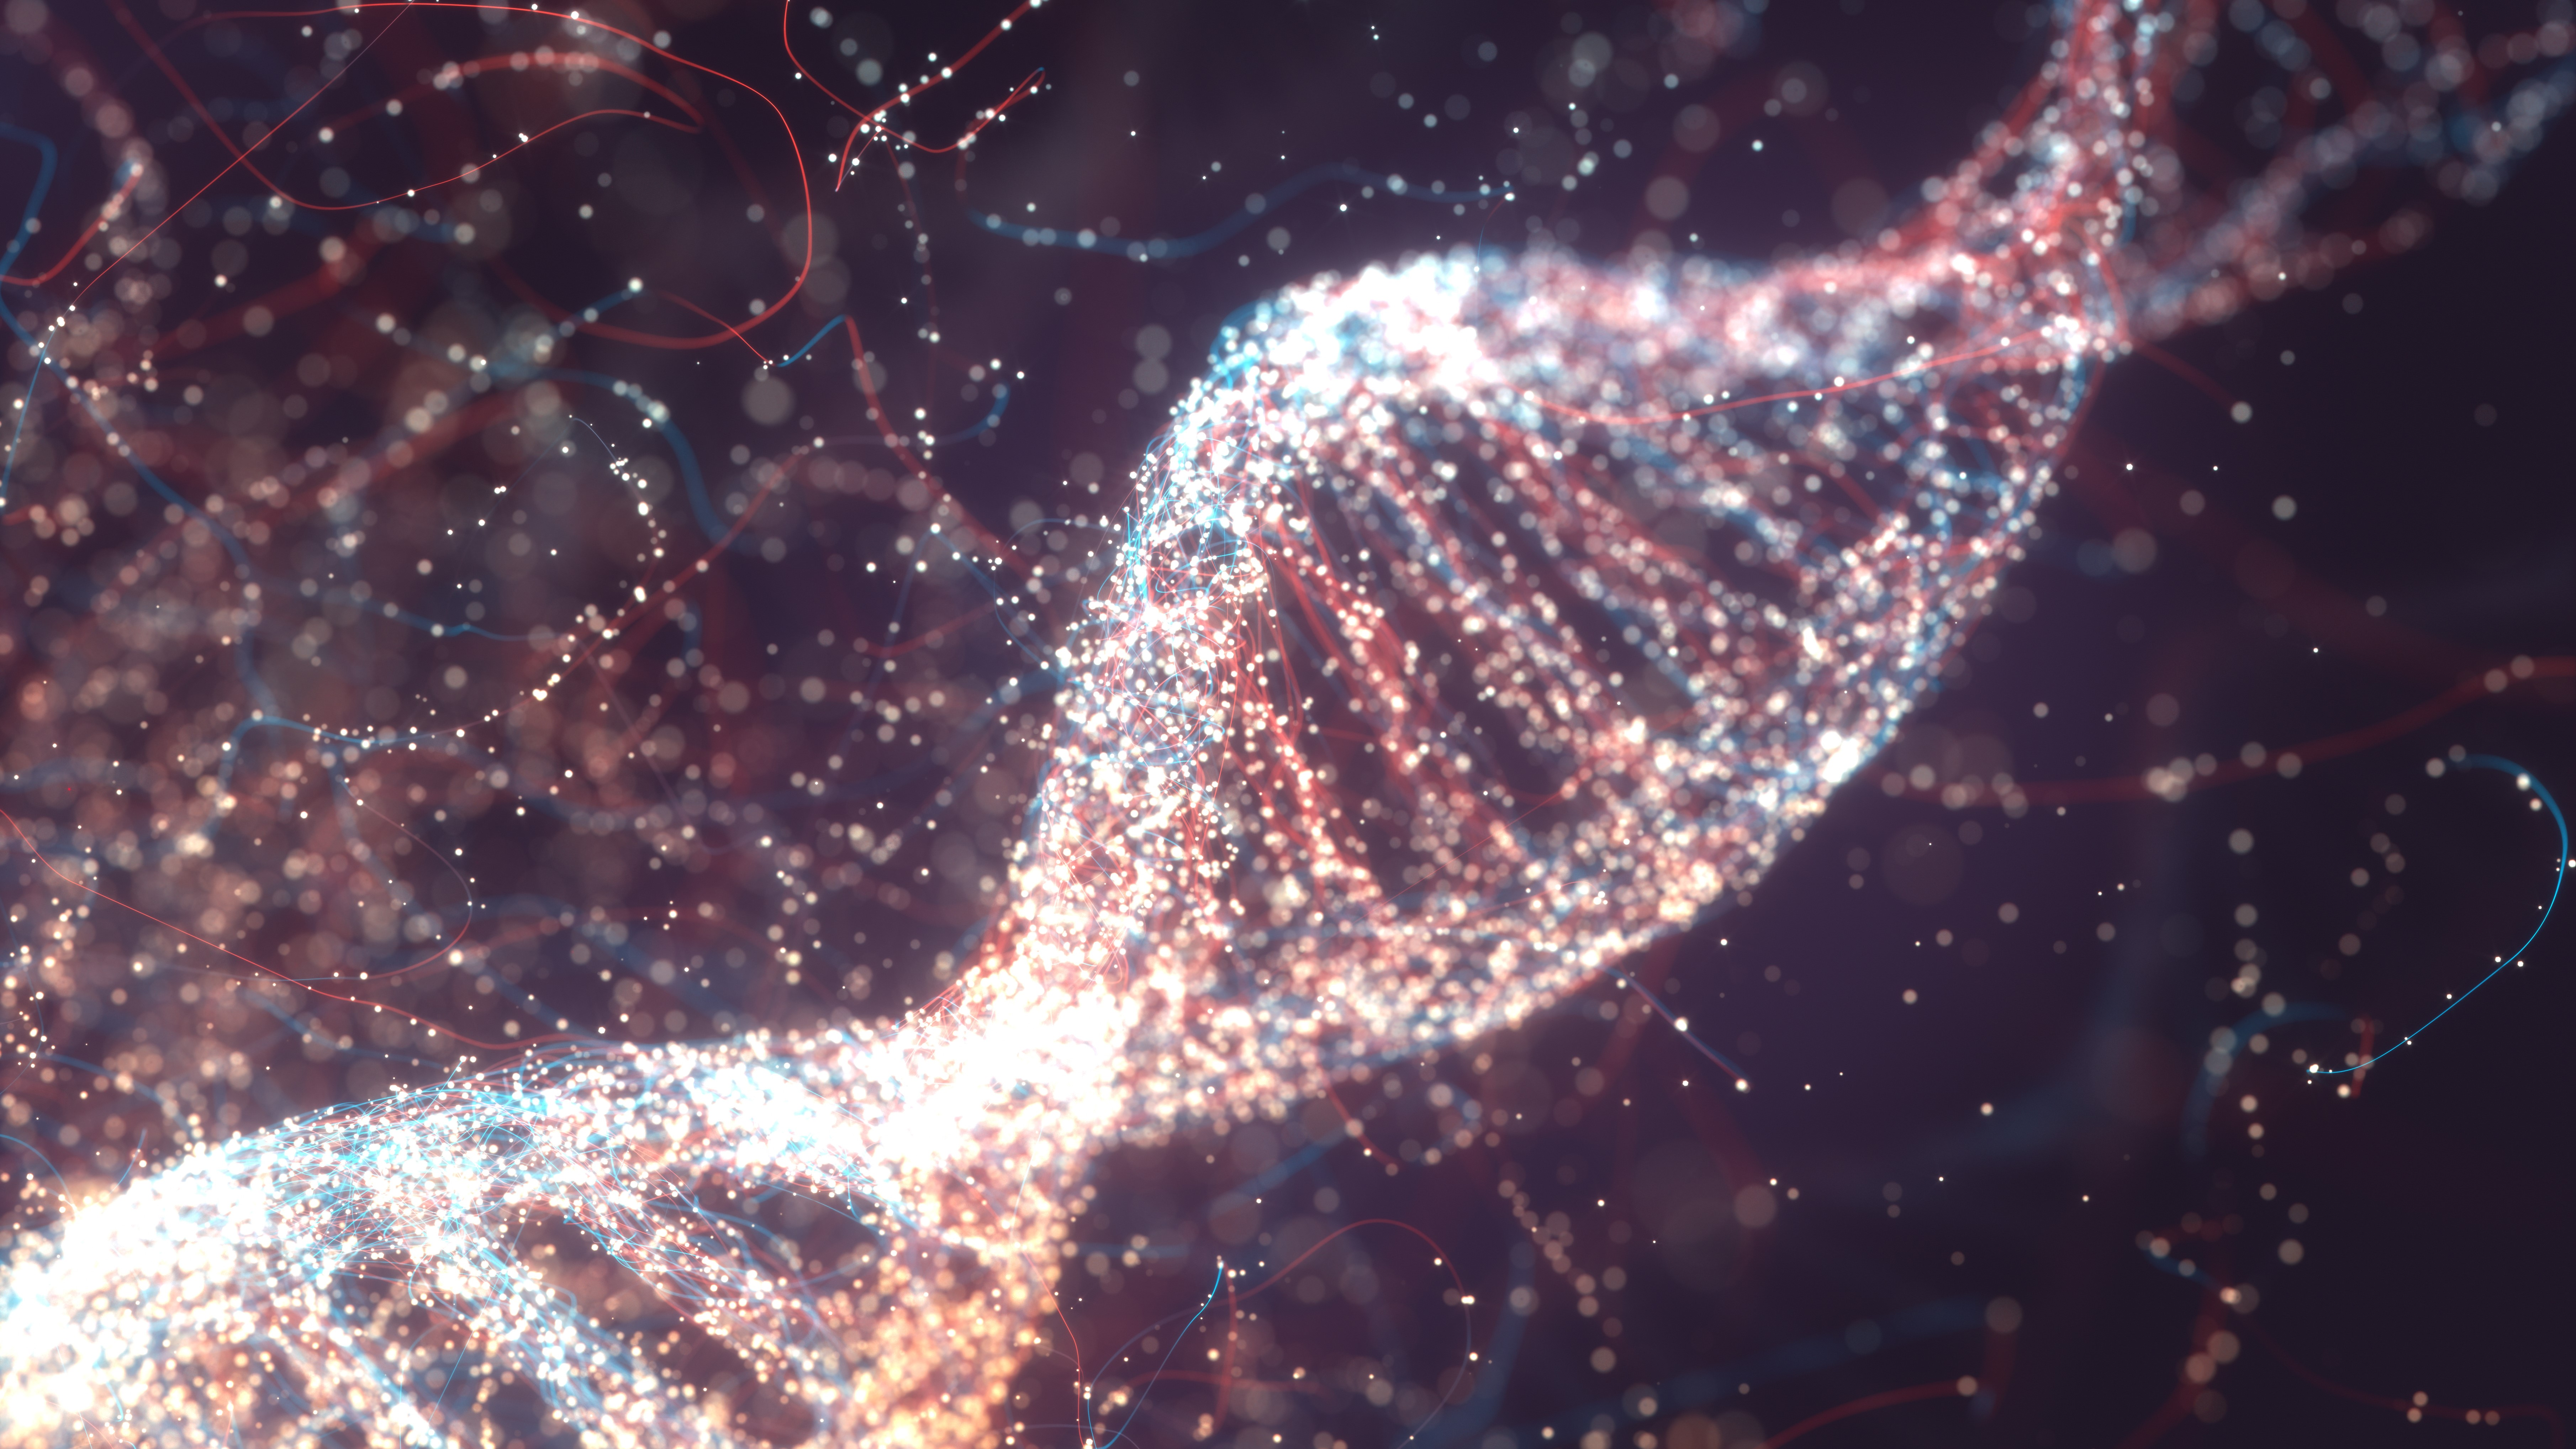 Researchers can now gather and sequence DNA from the air rHMA7fVGsi9QRzQVsA35vG